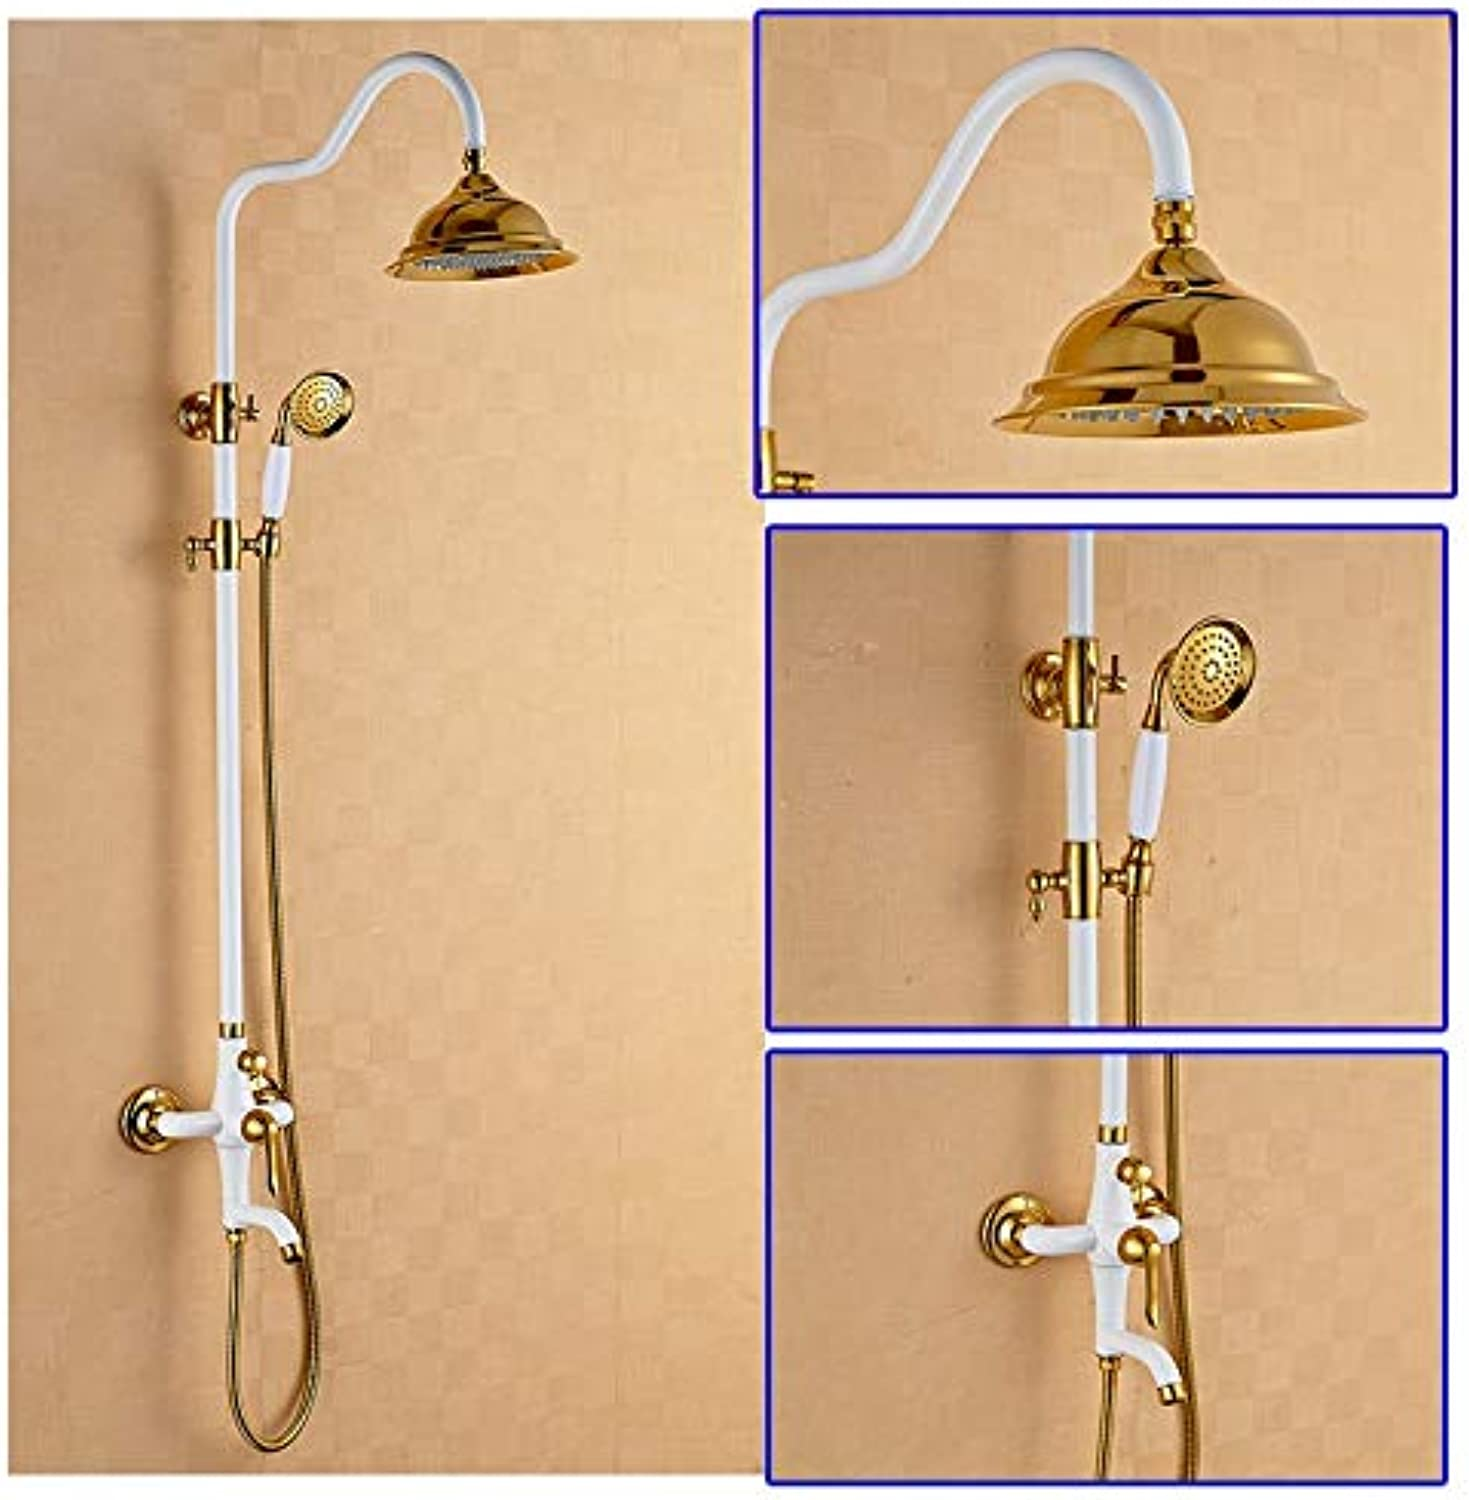 Free shipping rain shower faucet,brass Hot and cold bath faucet,waterfall bathroom faucets Shower Set